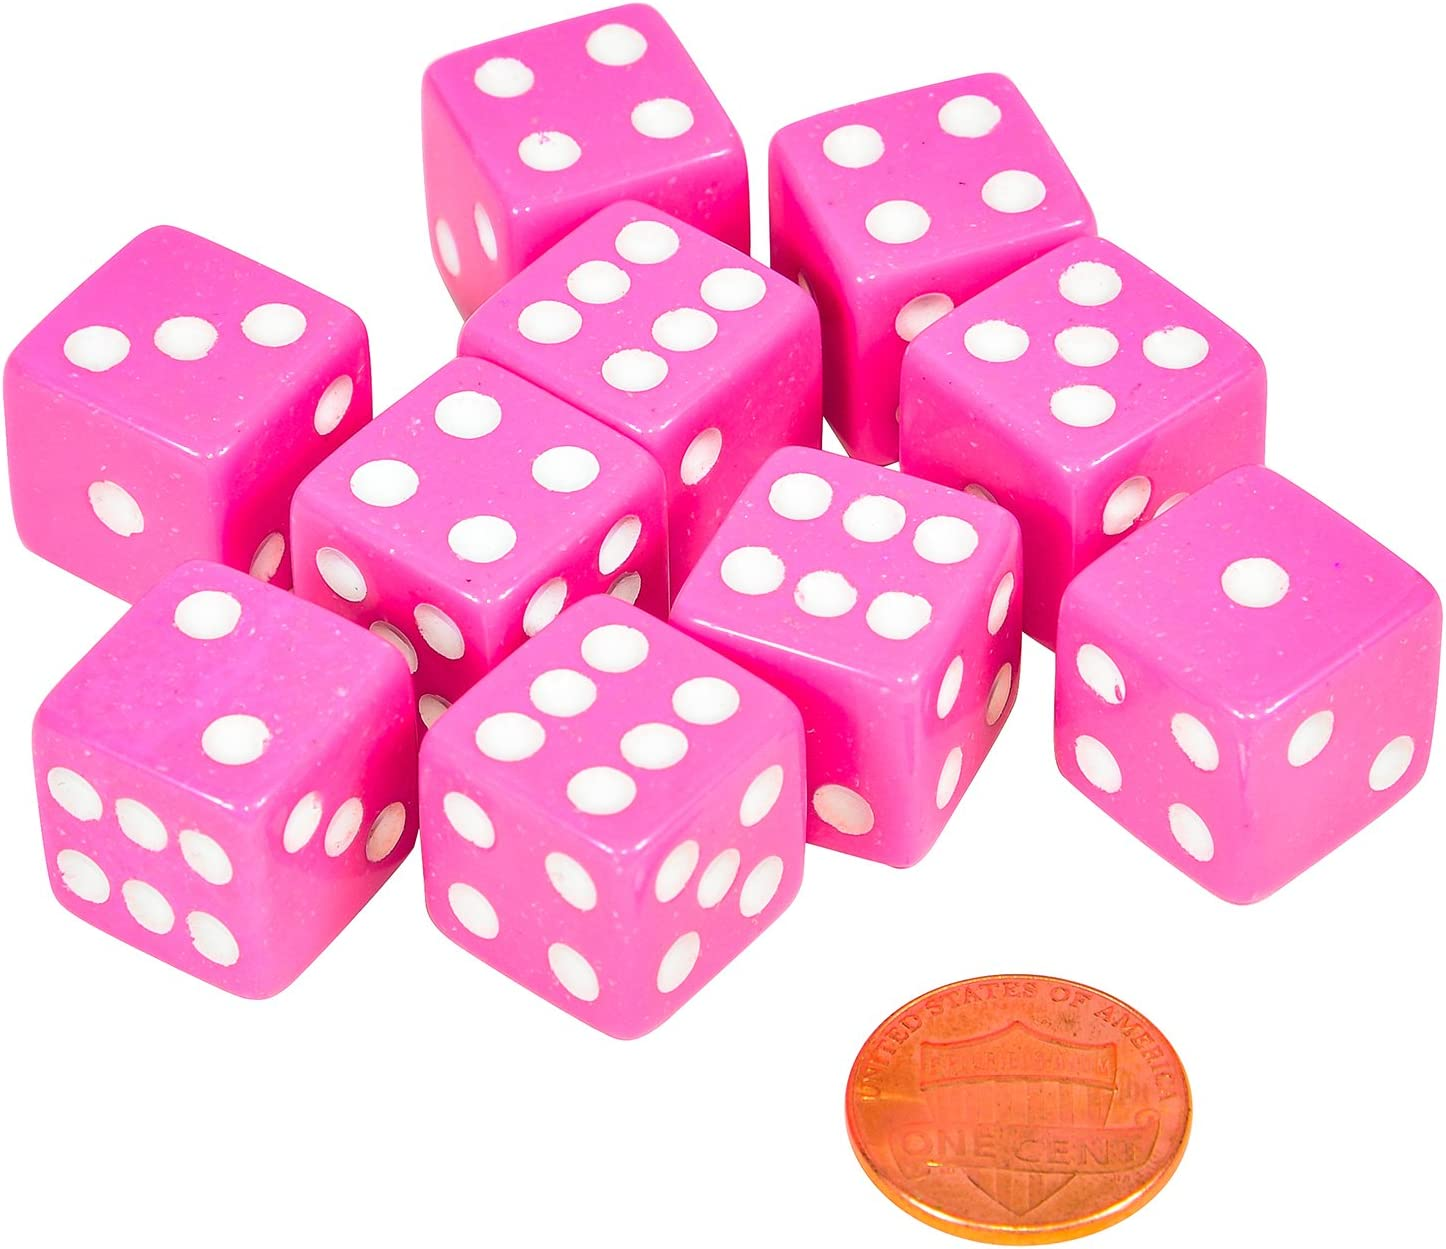 Set of 10 Six Sided Square Opaque 16mm D6 Dice Pink with White Pip Die